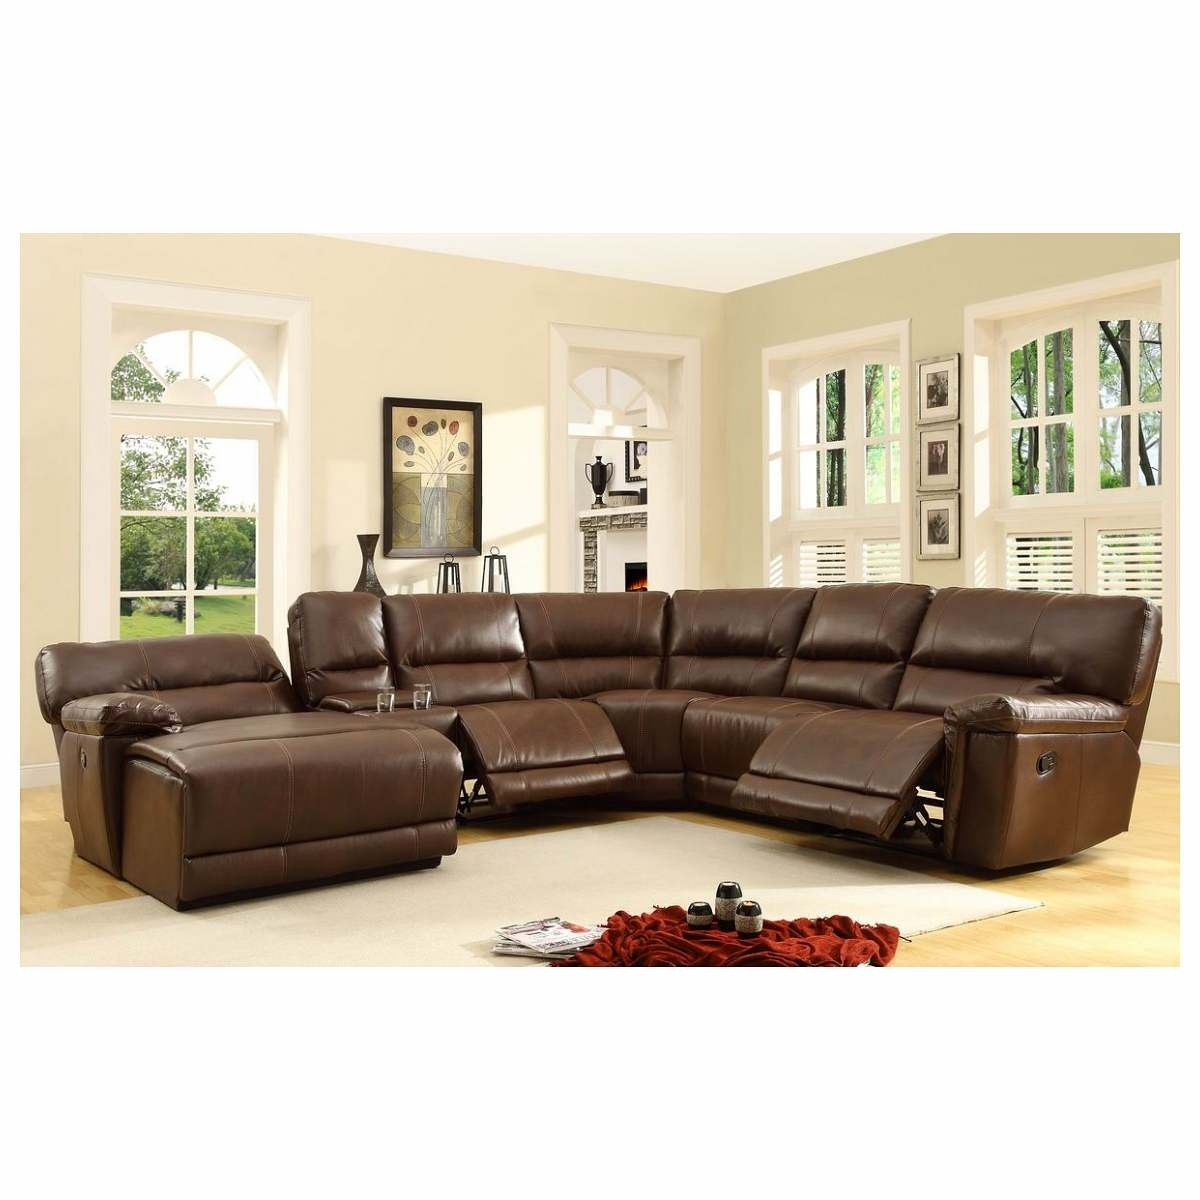 6 Pc Blythe Collection Brown Bonded Leather Match Upholstered For Well Known Sectional Sofas At Bad Boy (View 15 of 15)